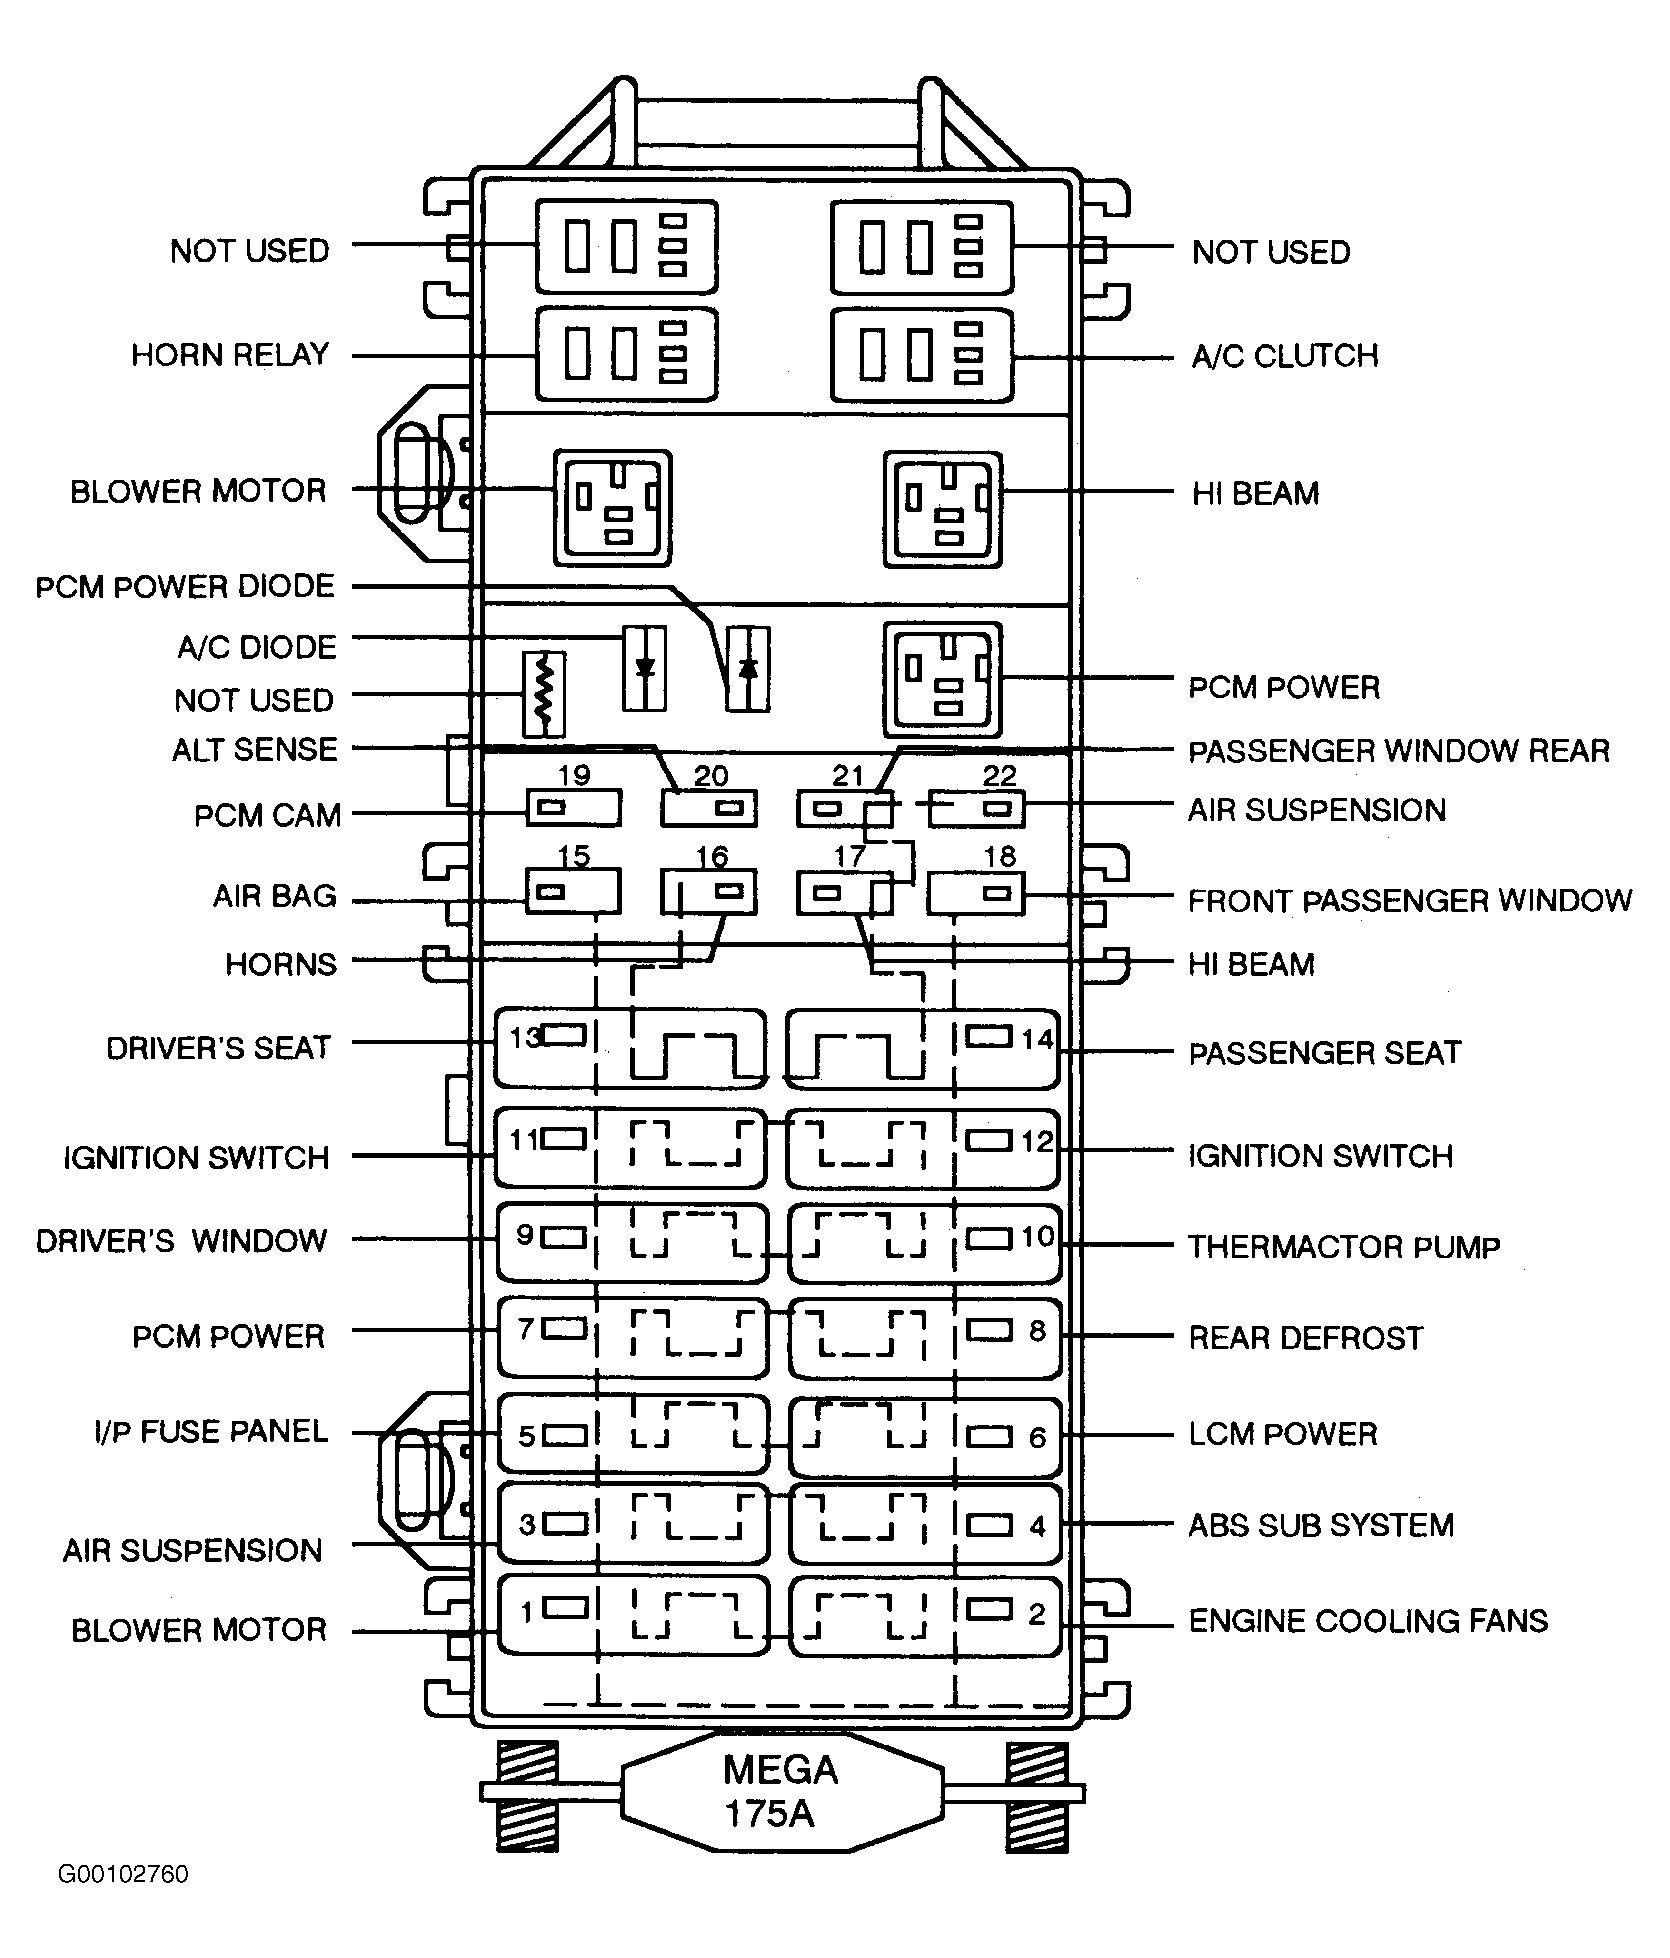 small resolution of 2001 lincoln continental fuse diagram wiring diagrams for 1997 lincoln continental fuse box layout 1997 lincoln continental fuse box diagram